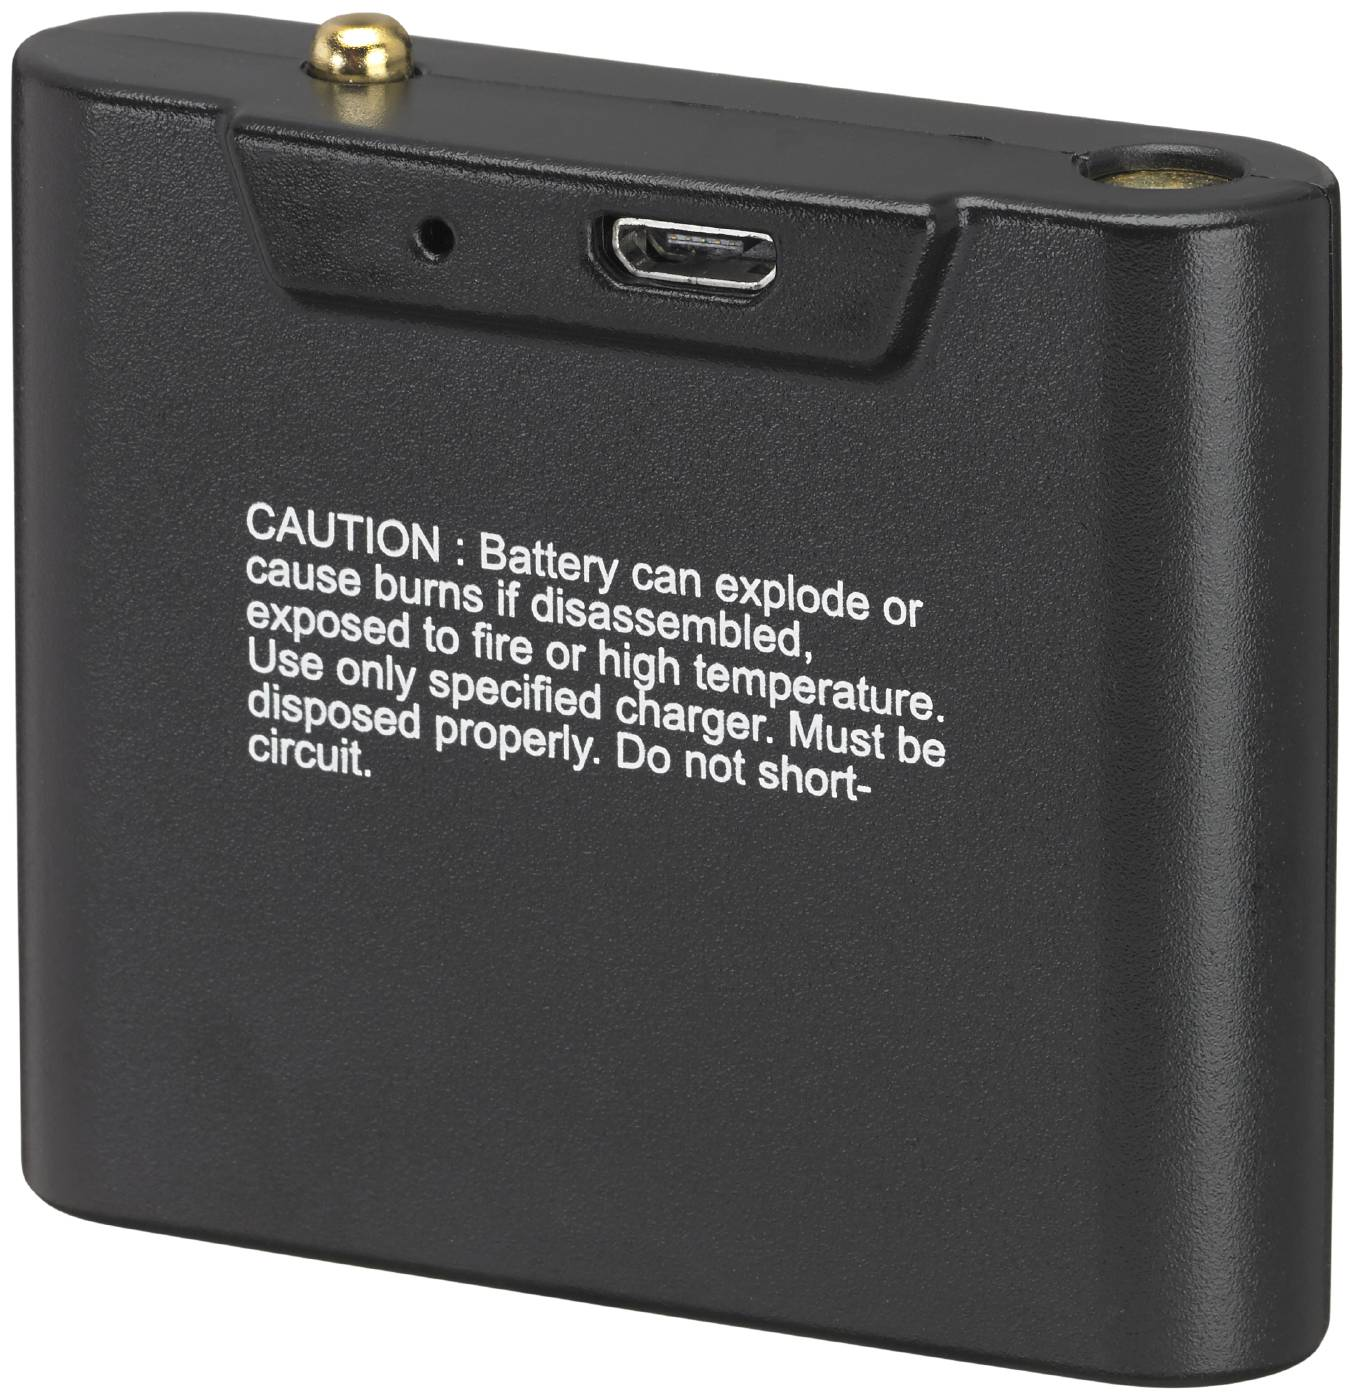 SPARE BATTERY FOR HALO 1000